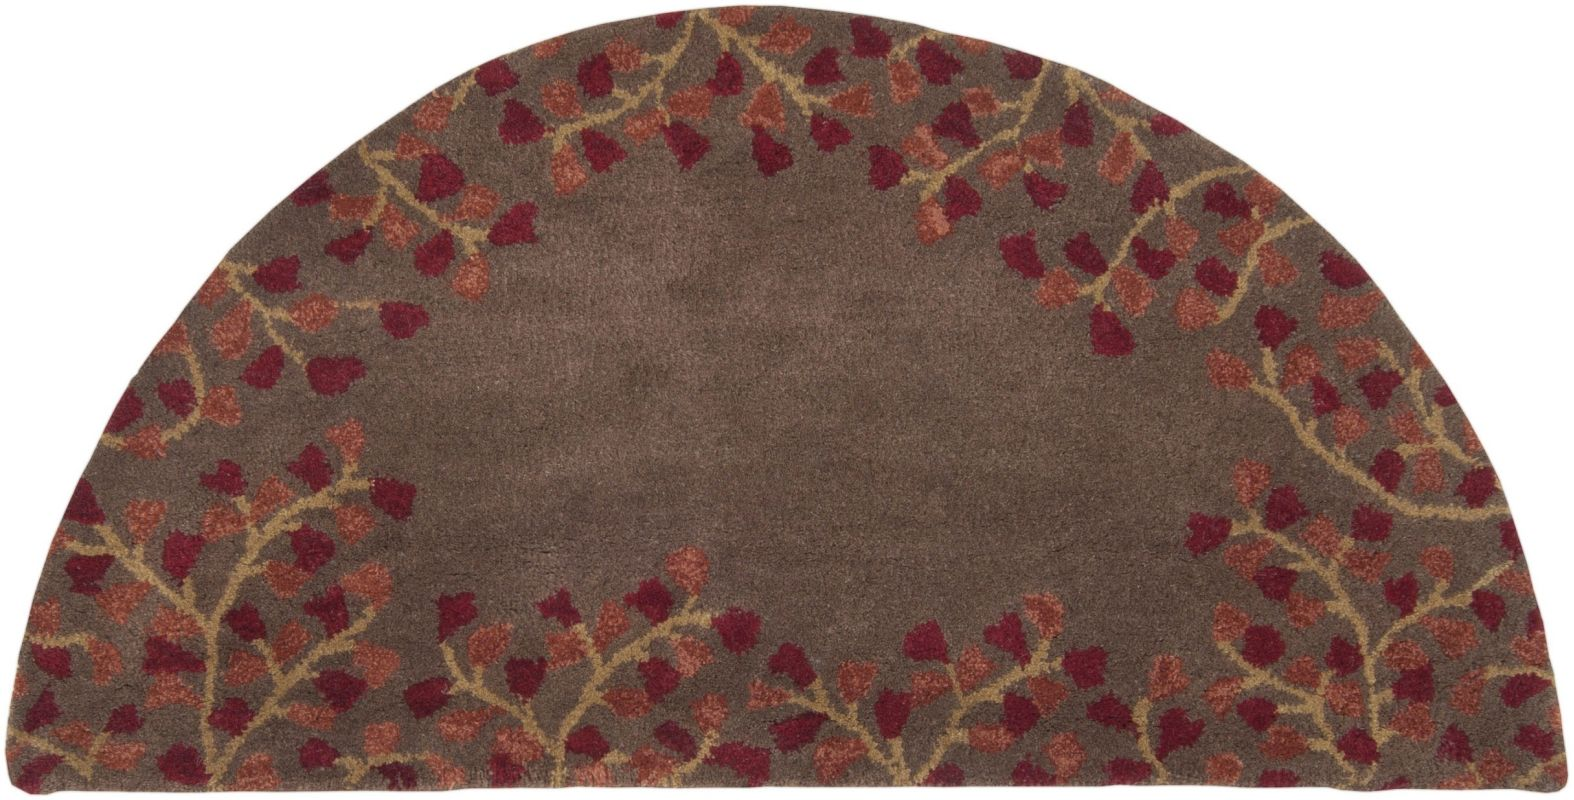 Surya ATH-5003 Athena Hand Tufted Wool Rug Red 10 x 14 Home Decor Rugs